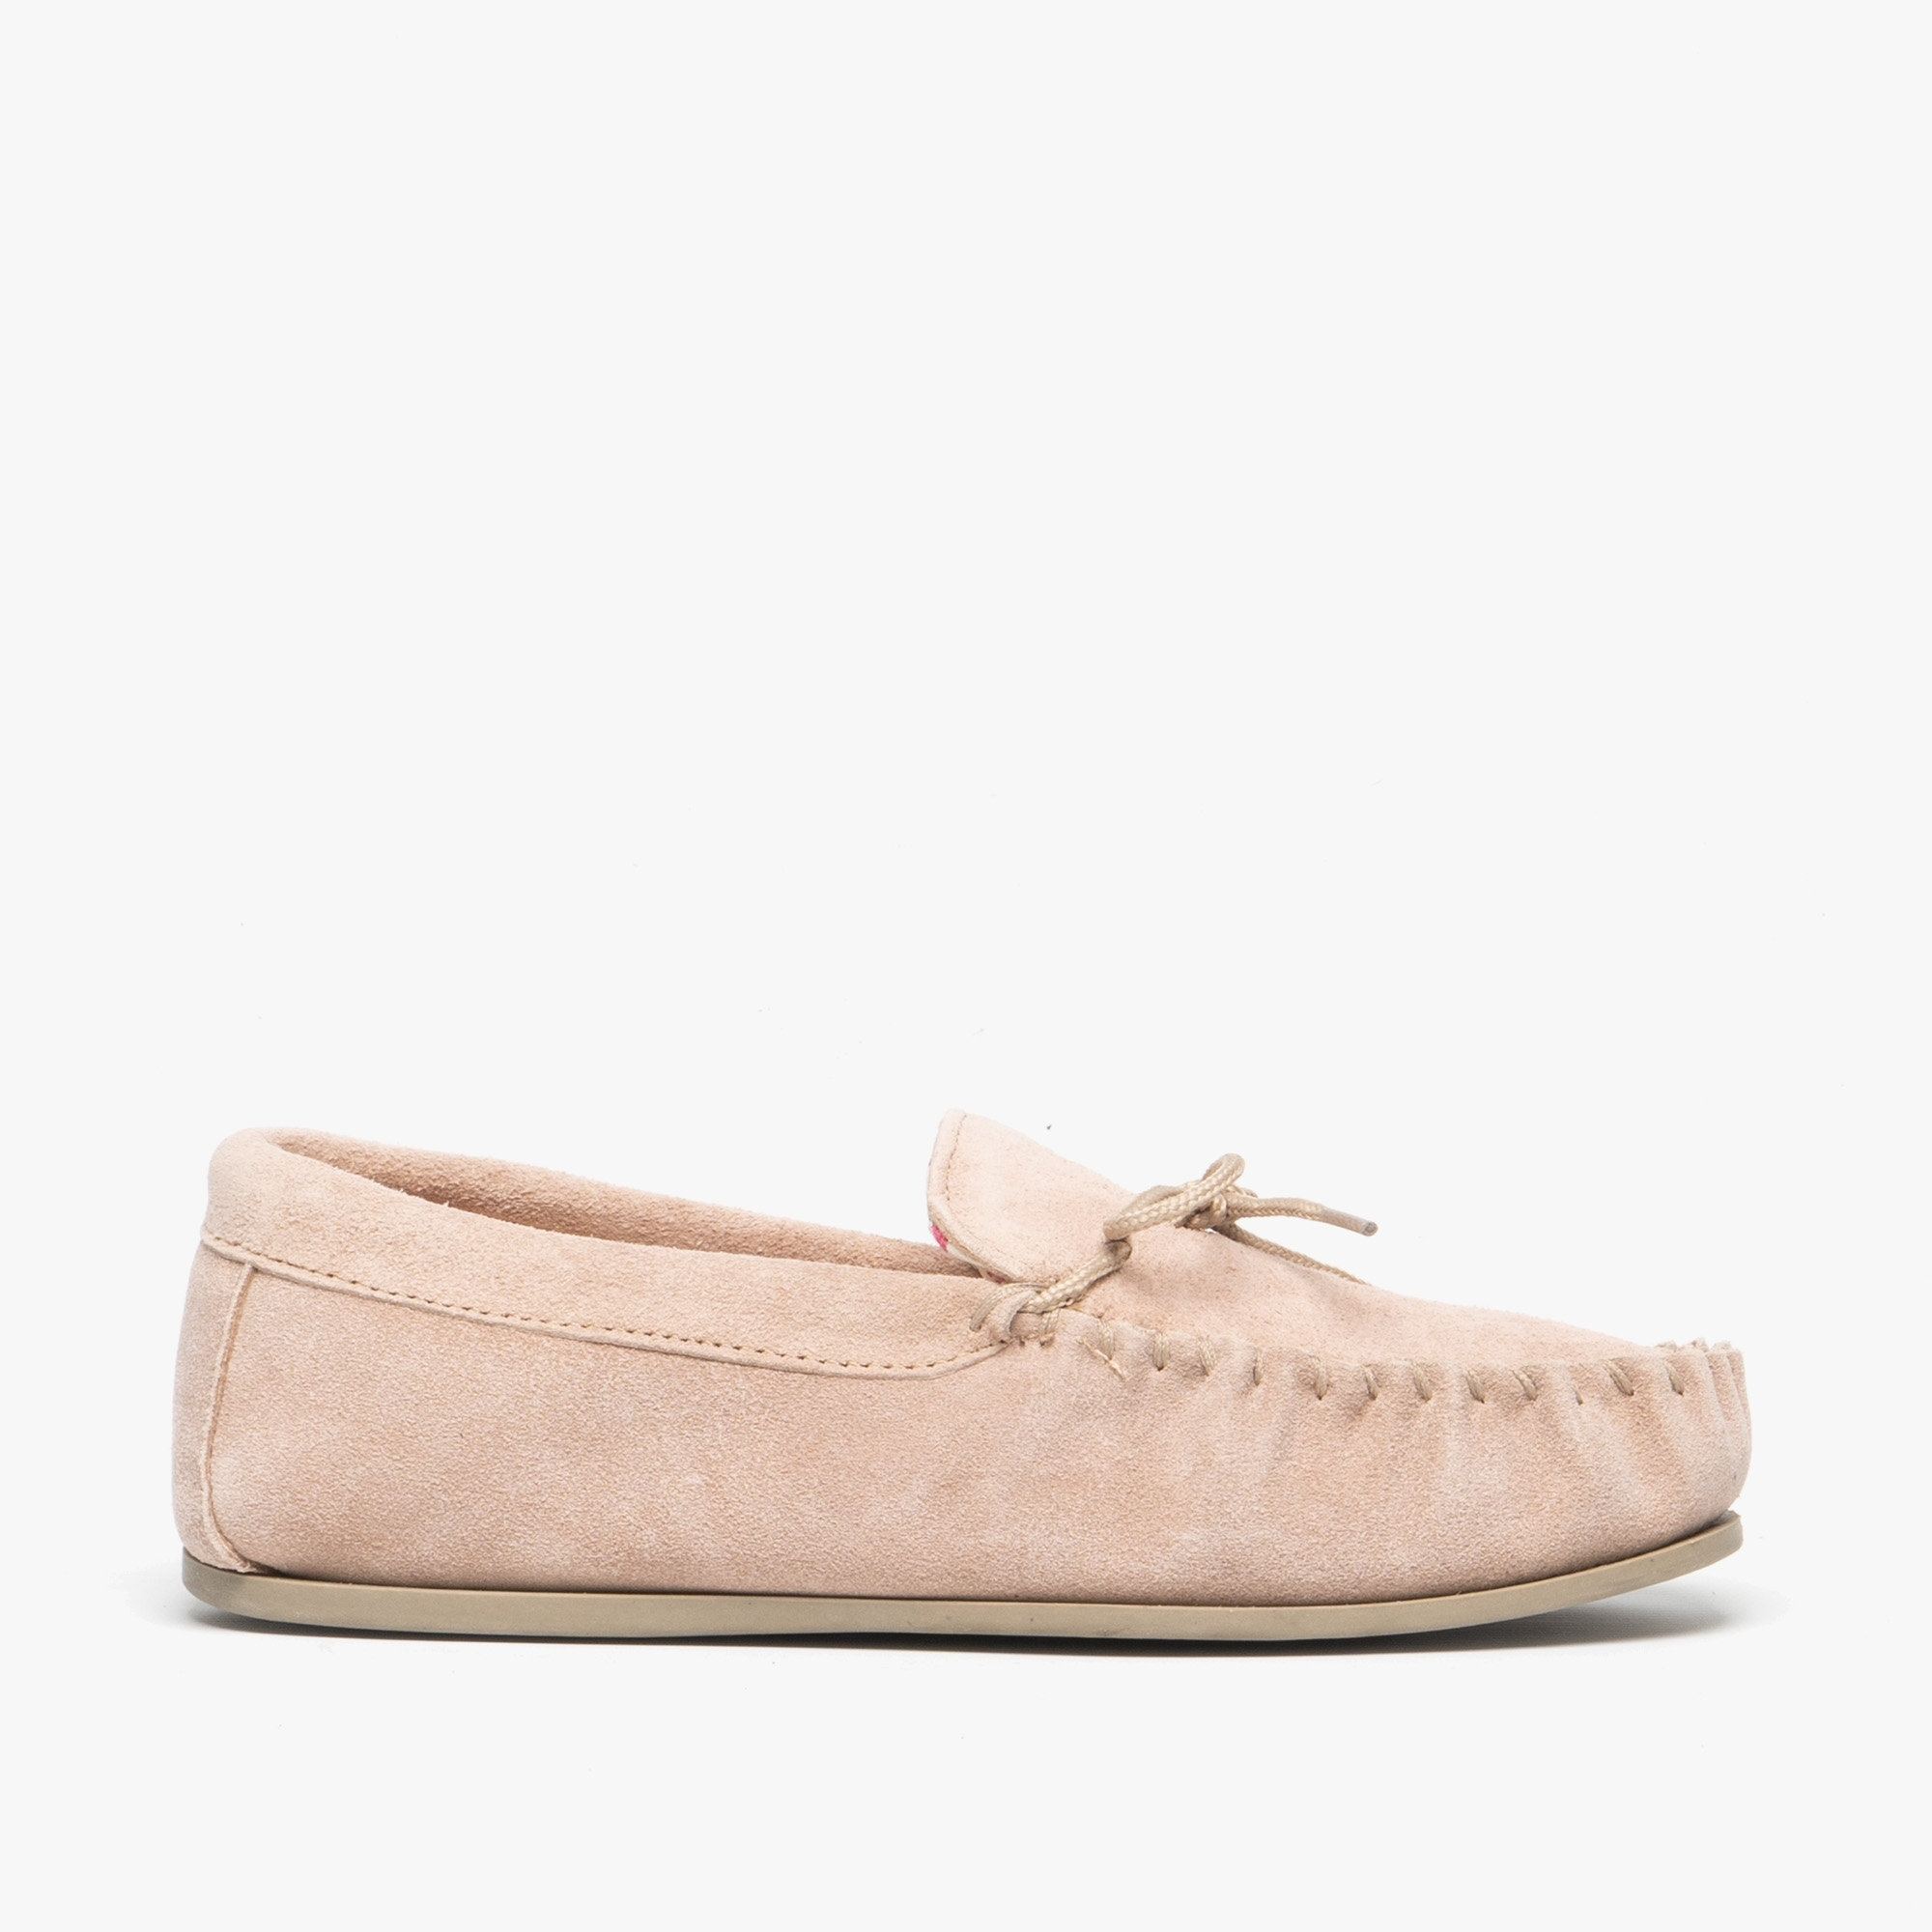 Mokkers LILY Ladies Suede Moccasin